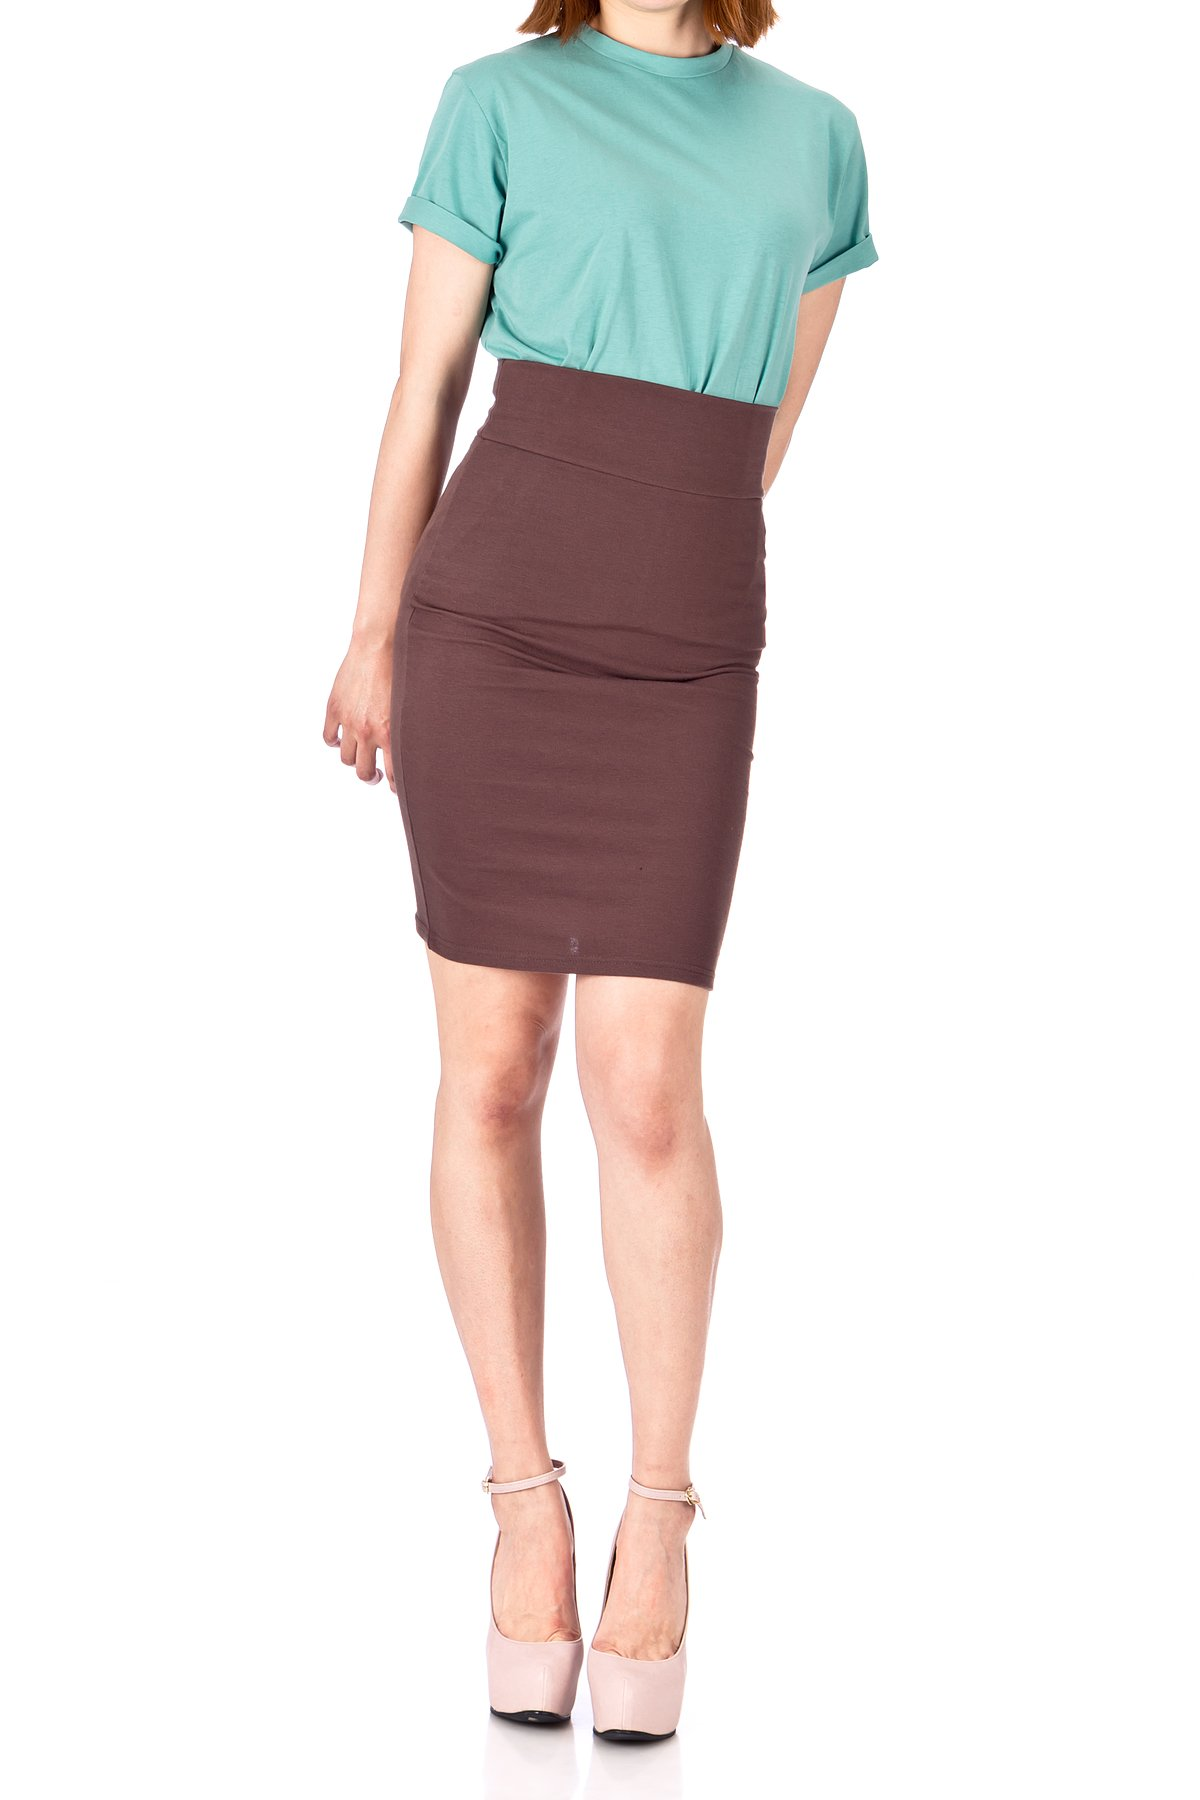 Every Occasion Stretch Pull on Wide High Waist Bodycon Pencil Knee Length Midi Skirt Brown 03